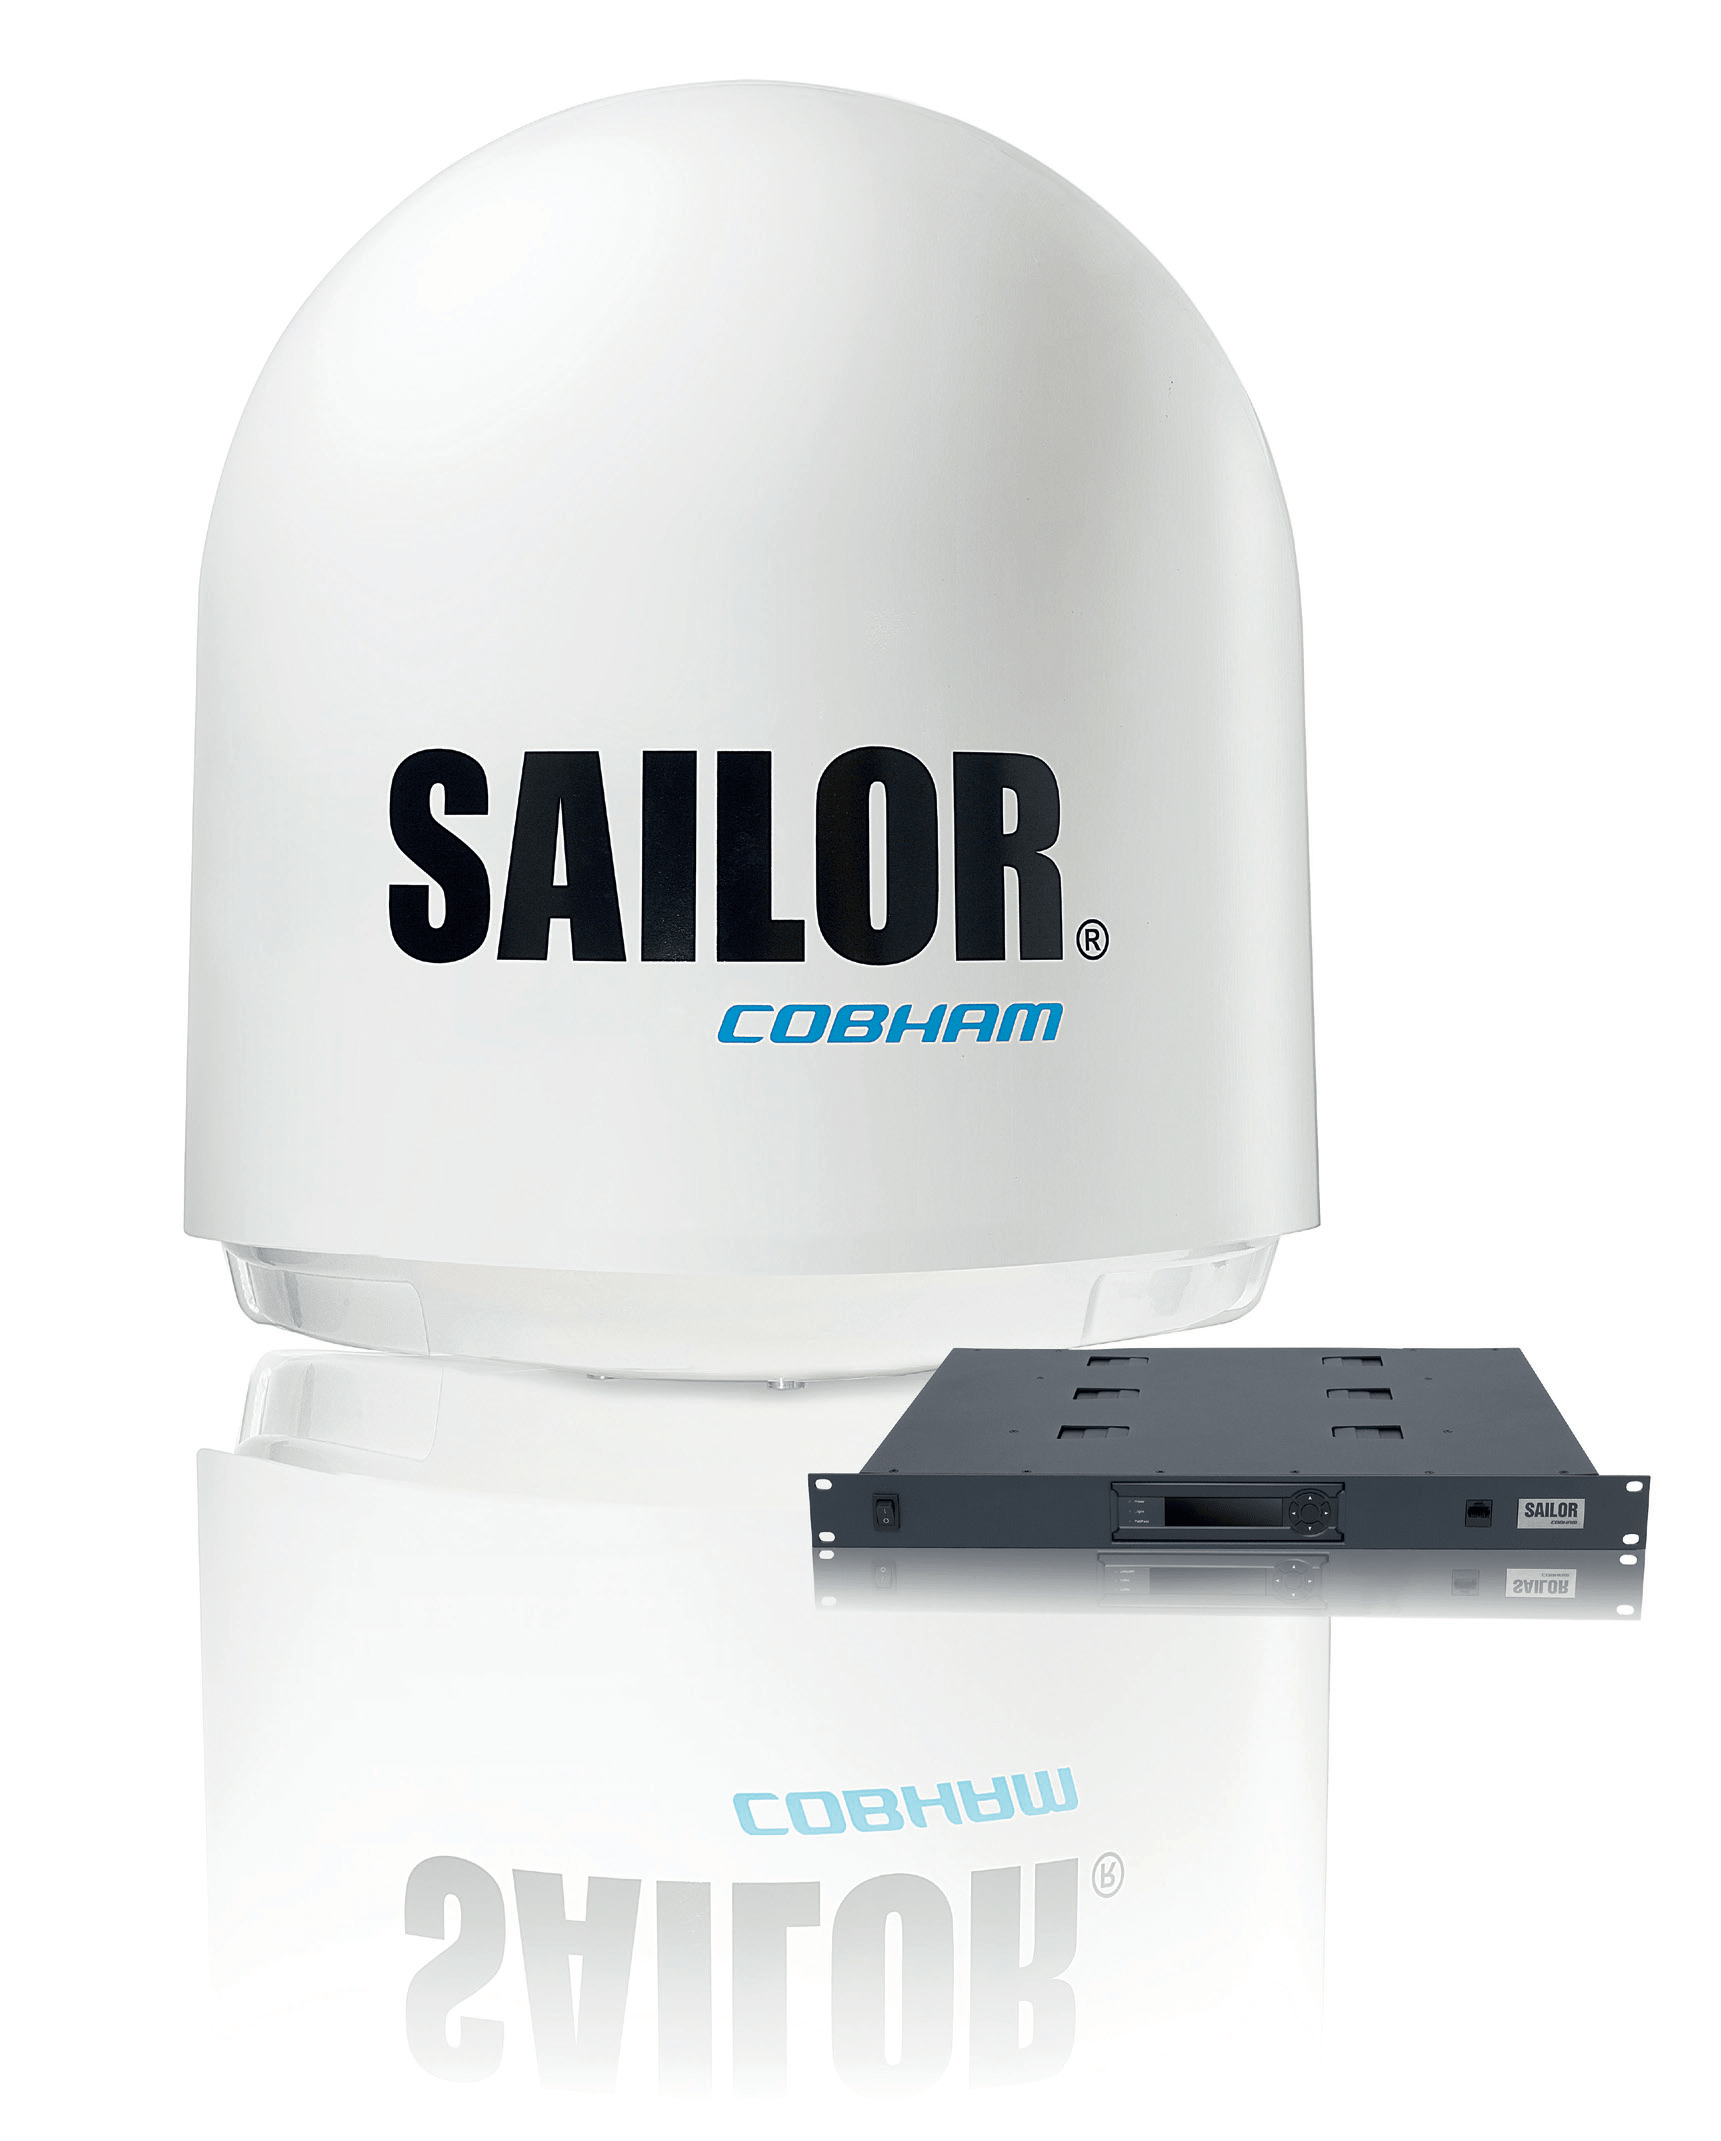 SAILOR 900 VSAT KA